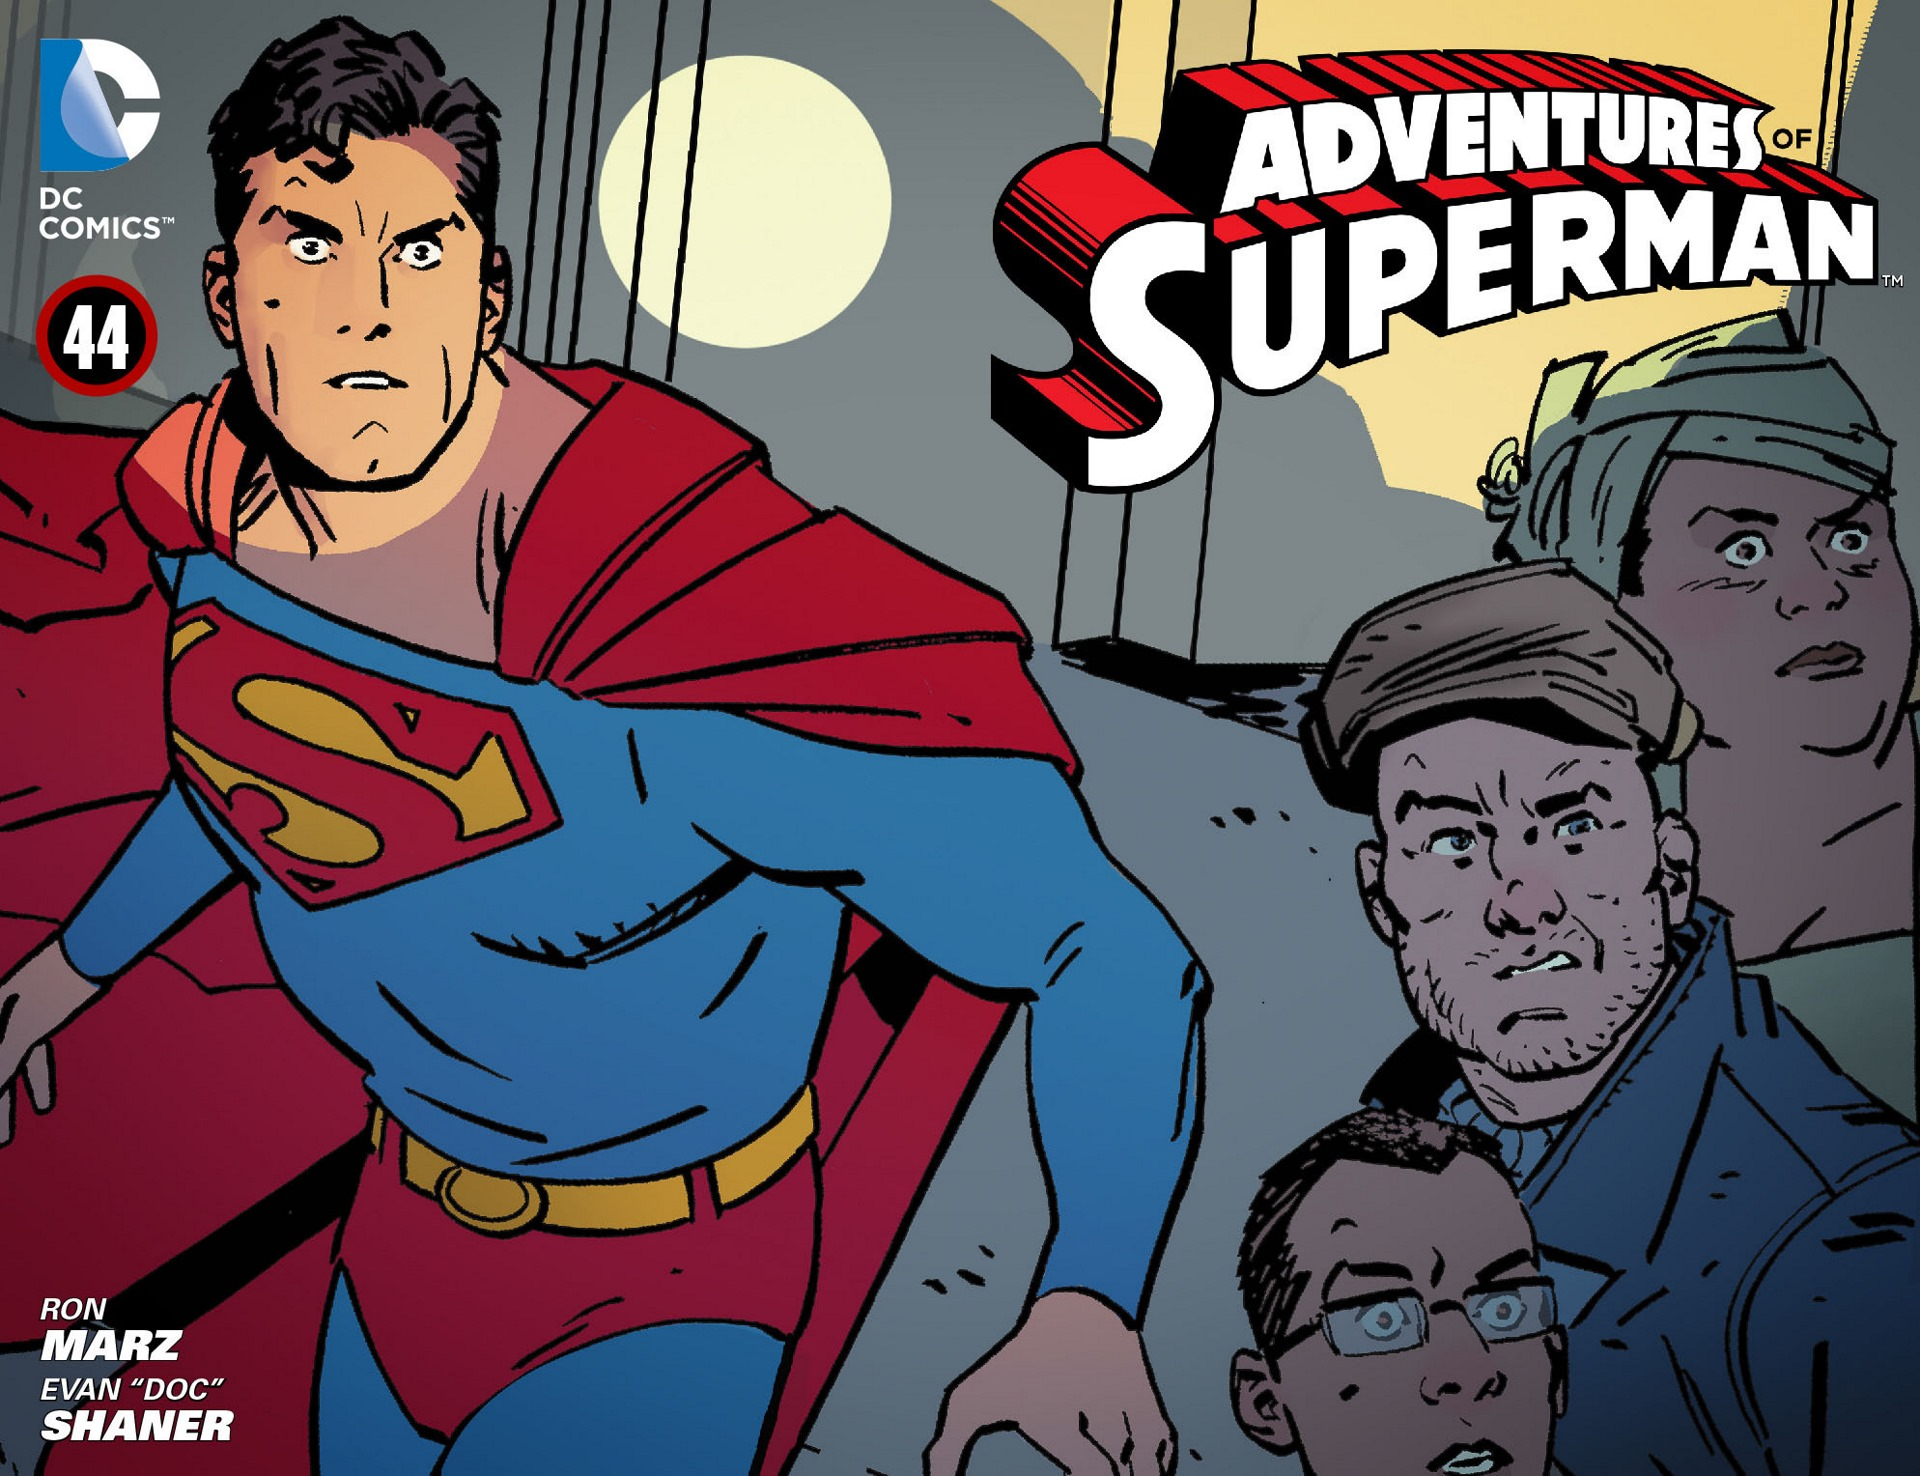 Read online Adventures of Superman [I] comic -  Issue #44 - 1